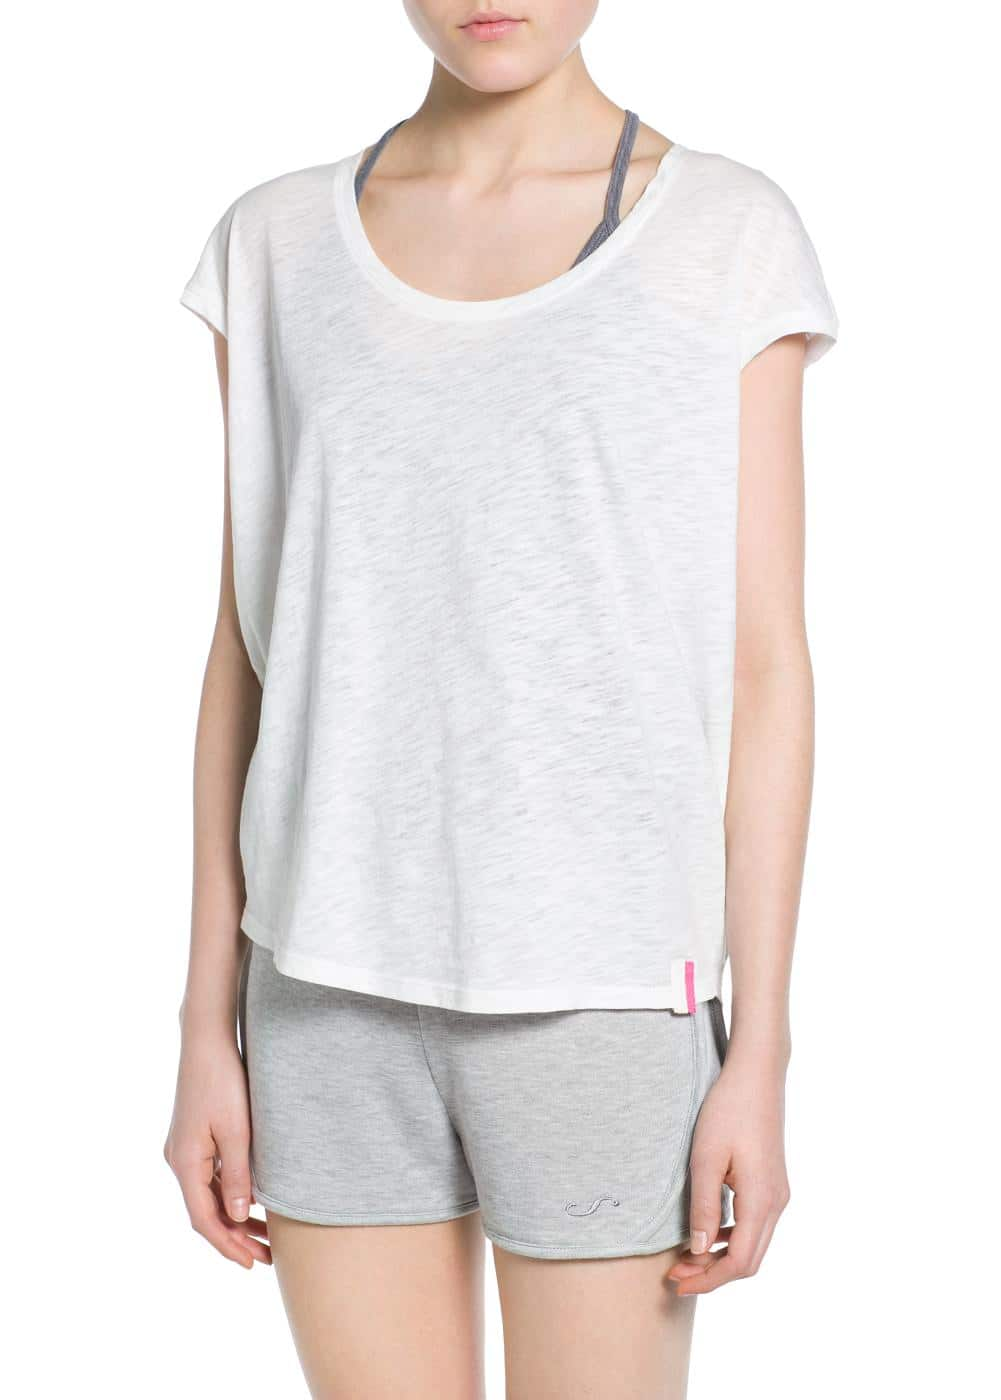 Yoga - Loose-fit comfort t-shirt